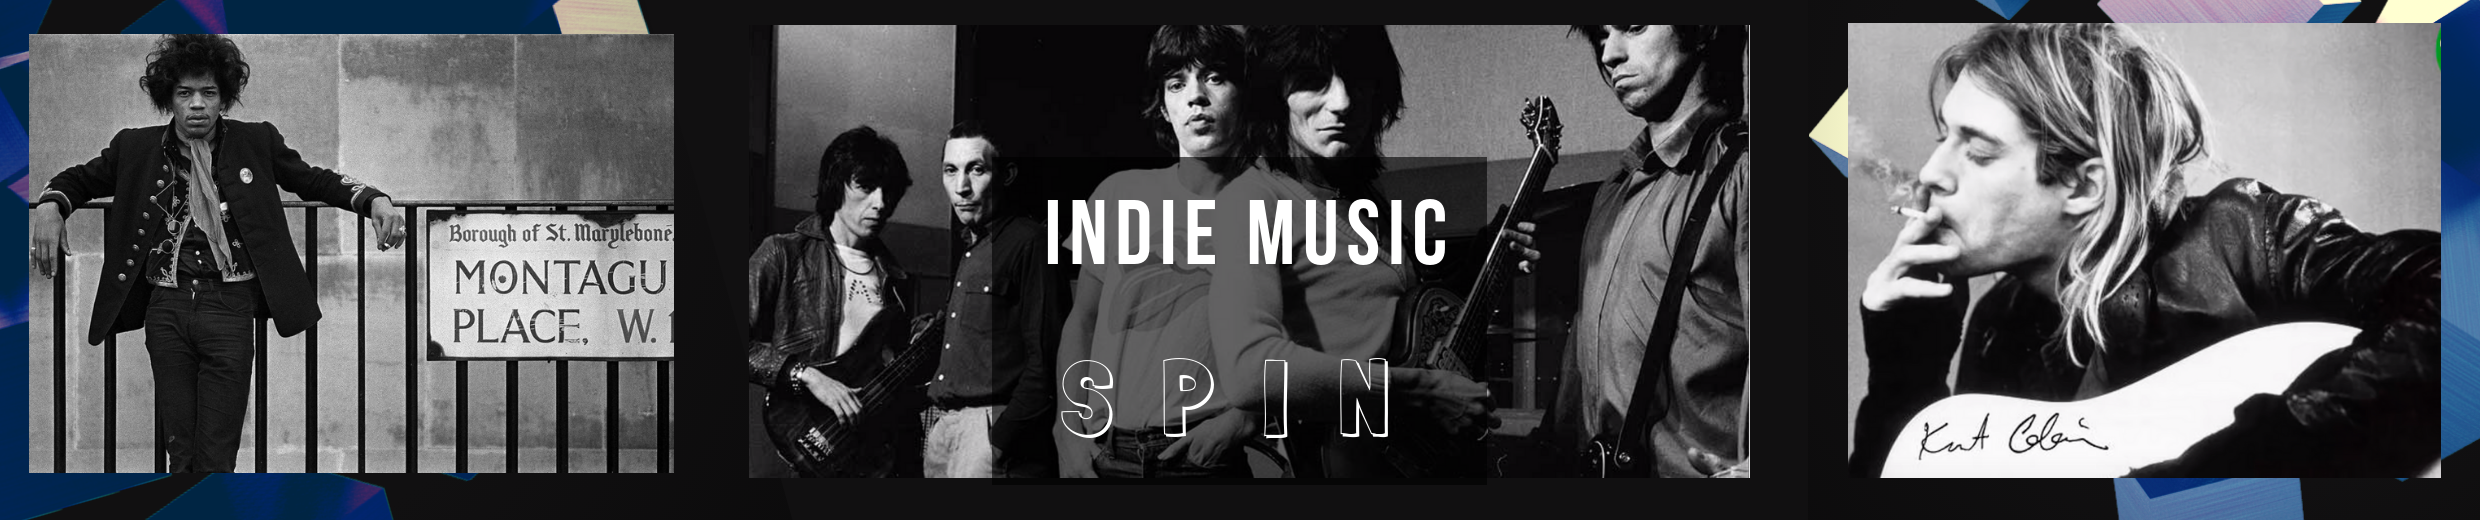 INDIE MUSIC SPIN banner.png